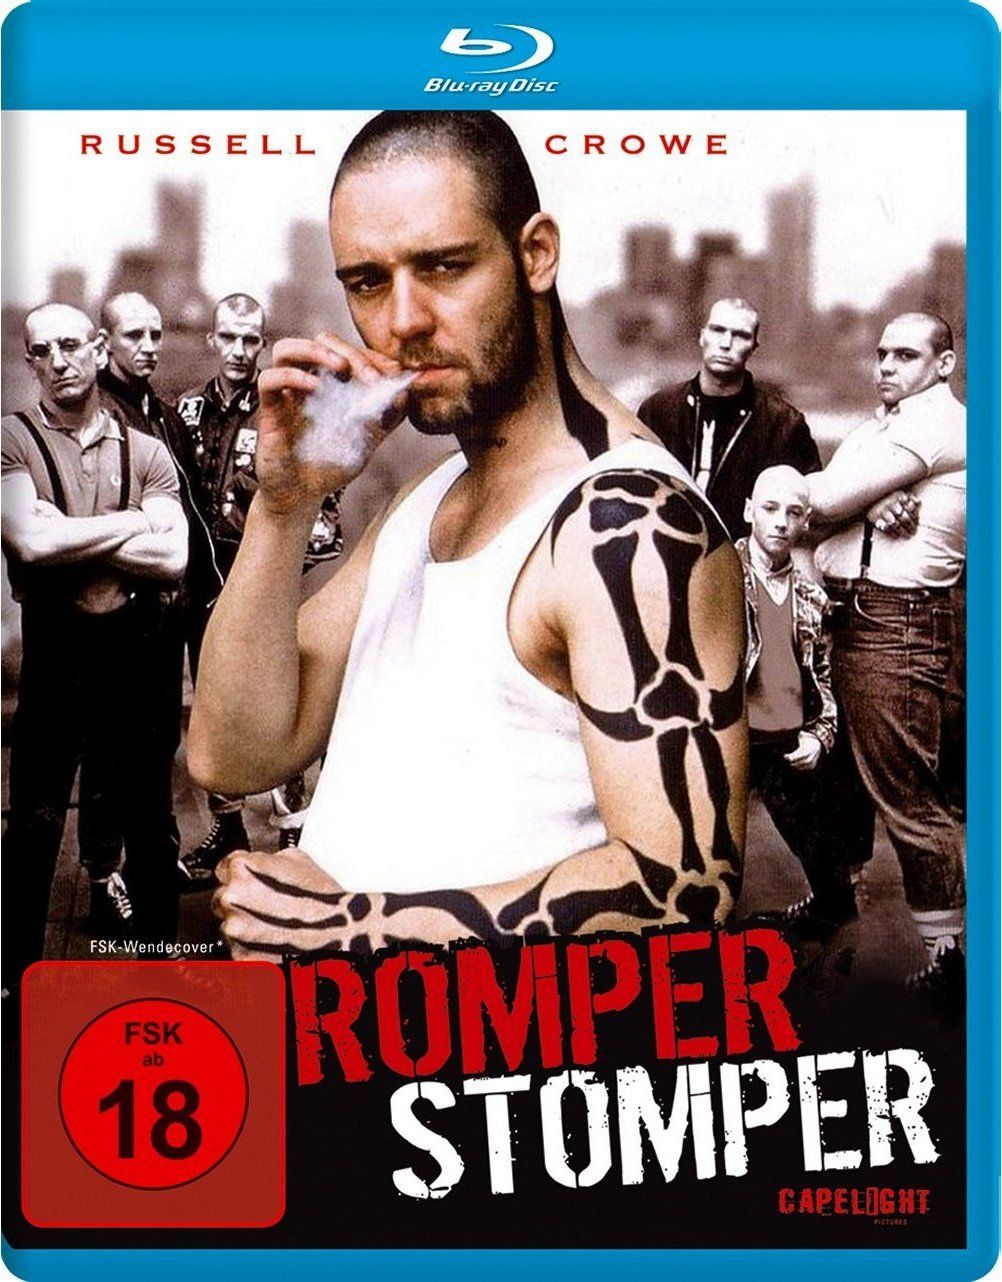 romper stomper | films & television | pinterest | movies, movies